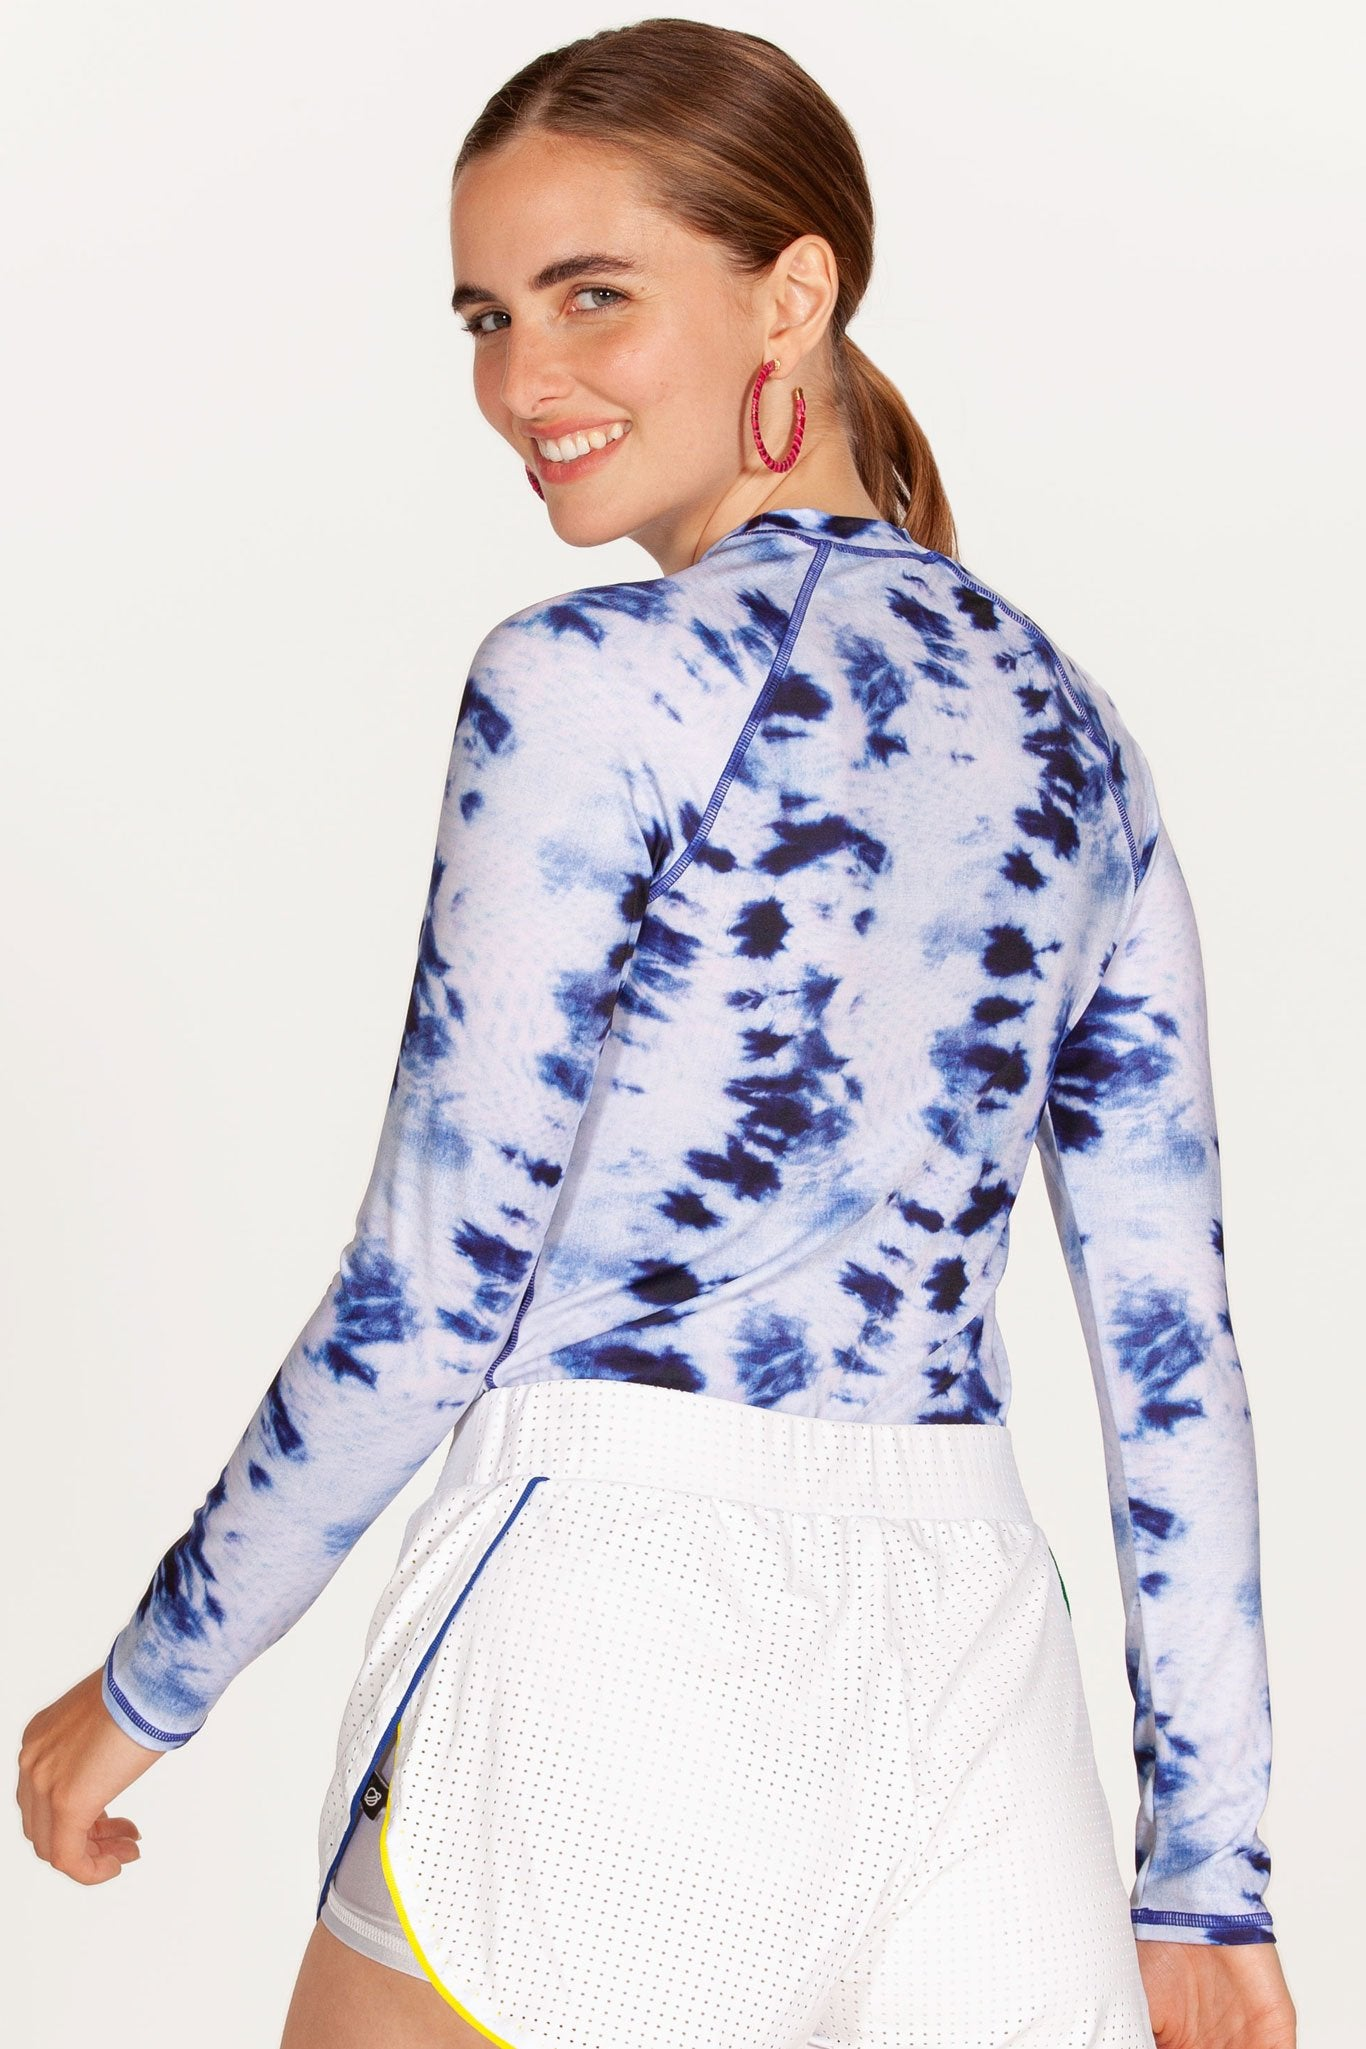 Blueberry Tie Dye Long-Sleeved Rash Guard